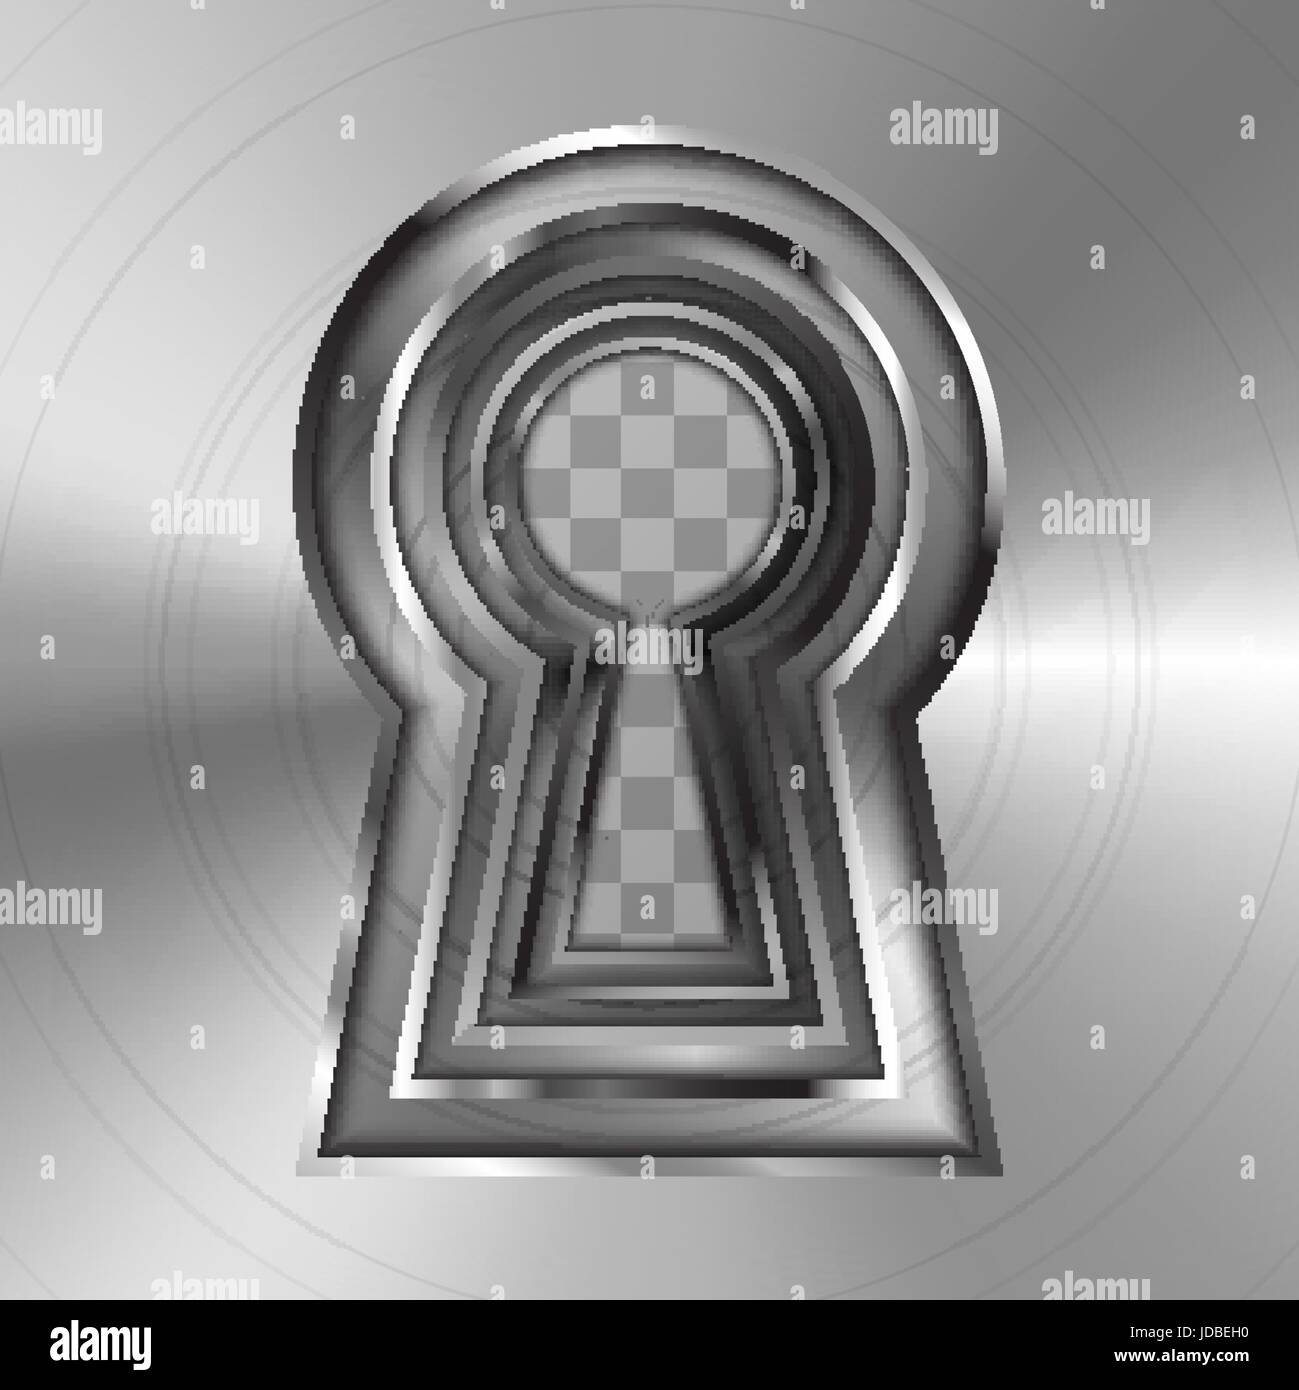 Keyholes in bright glossy metal plate on transparent background - Stock Image